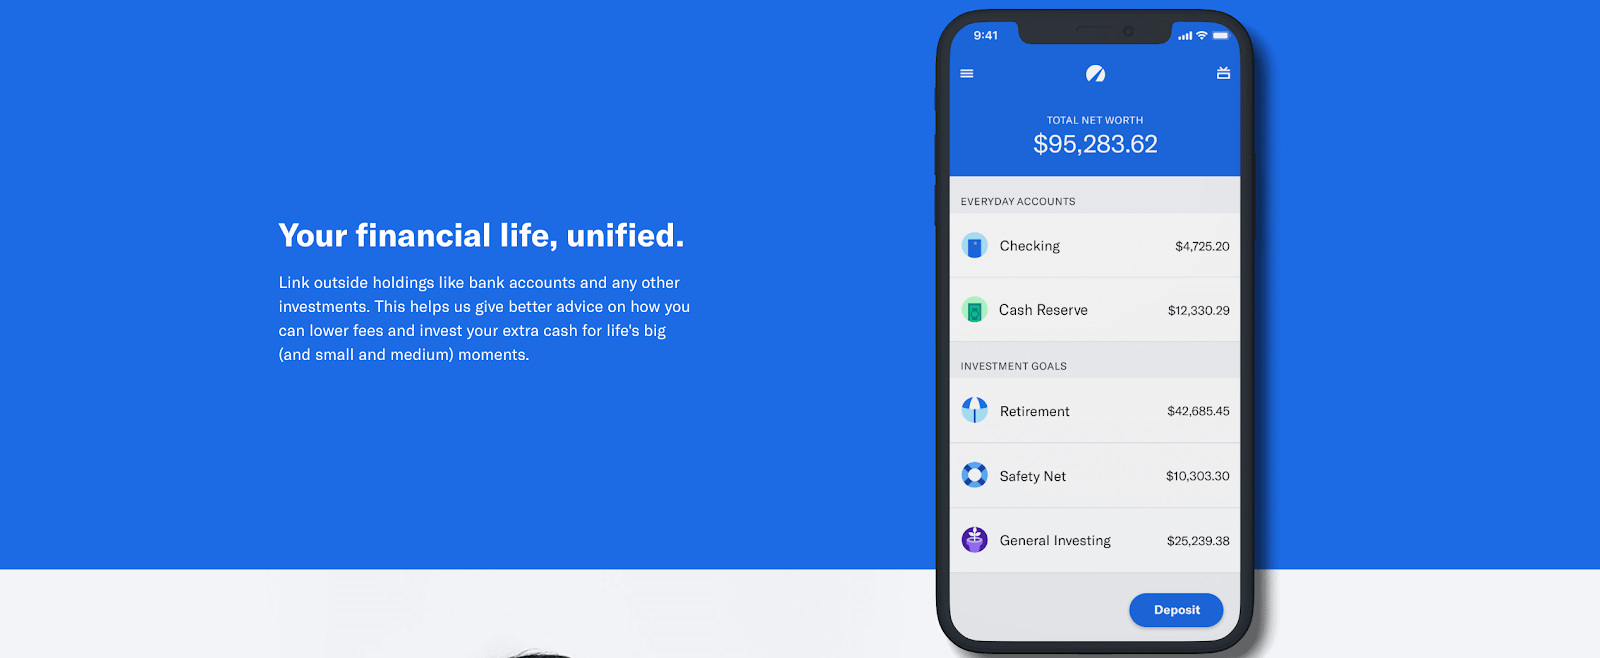 7 Of The Best Investing Apps For People On The Go - Betterment